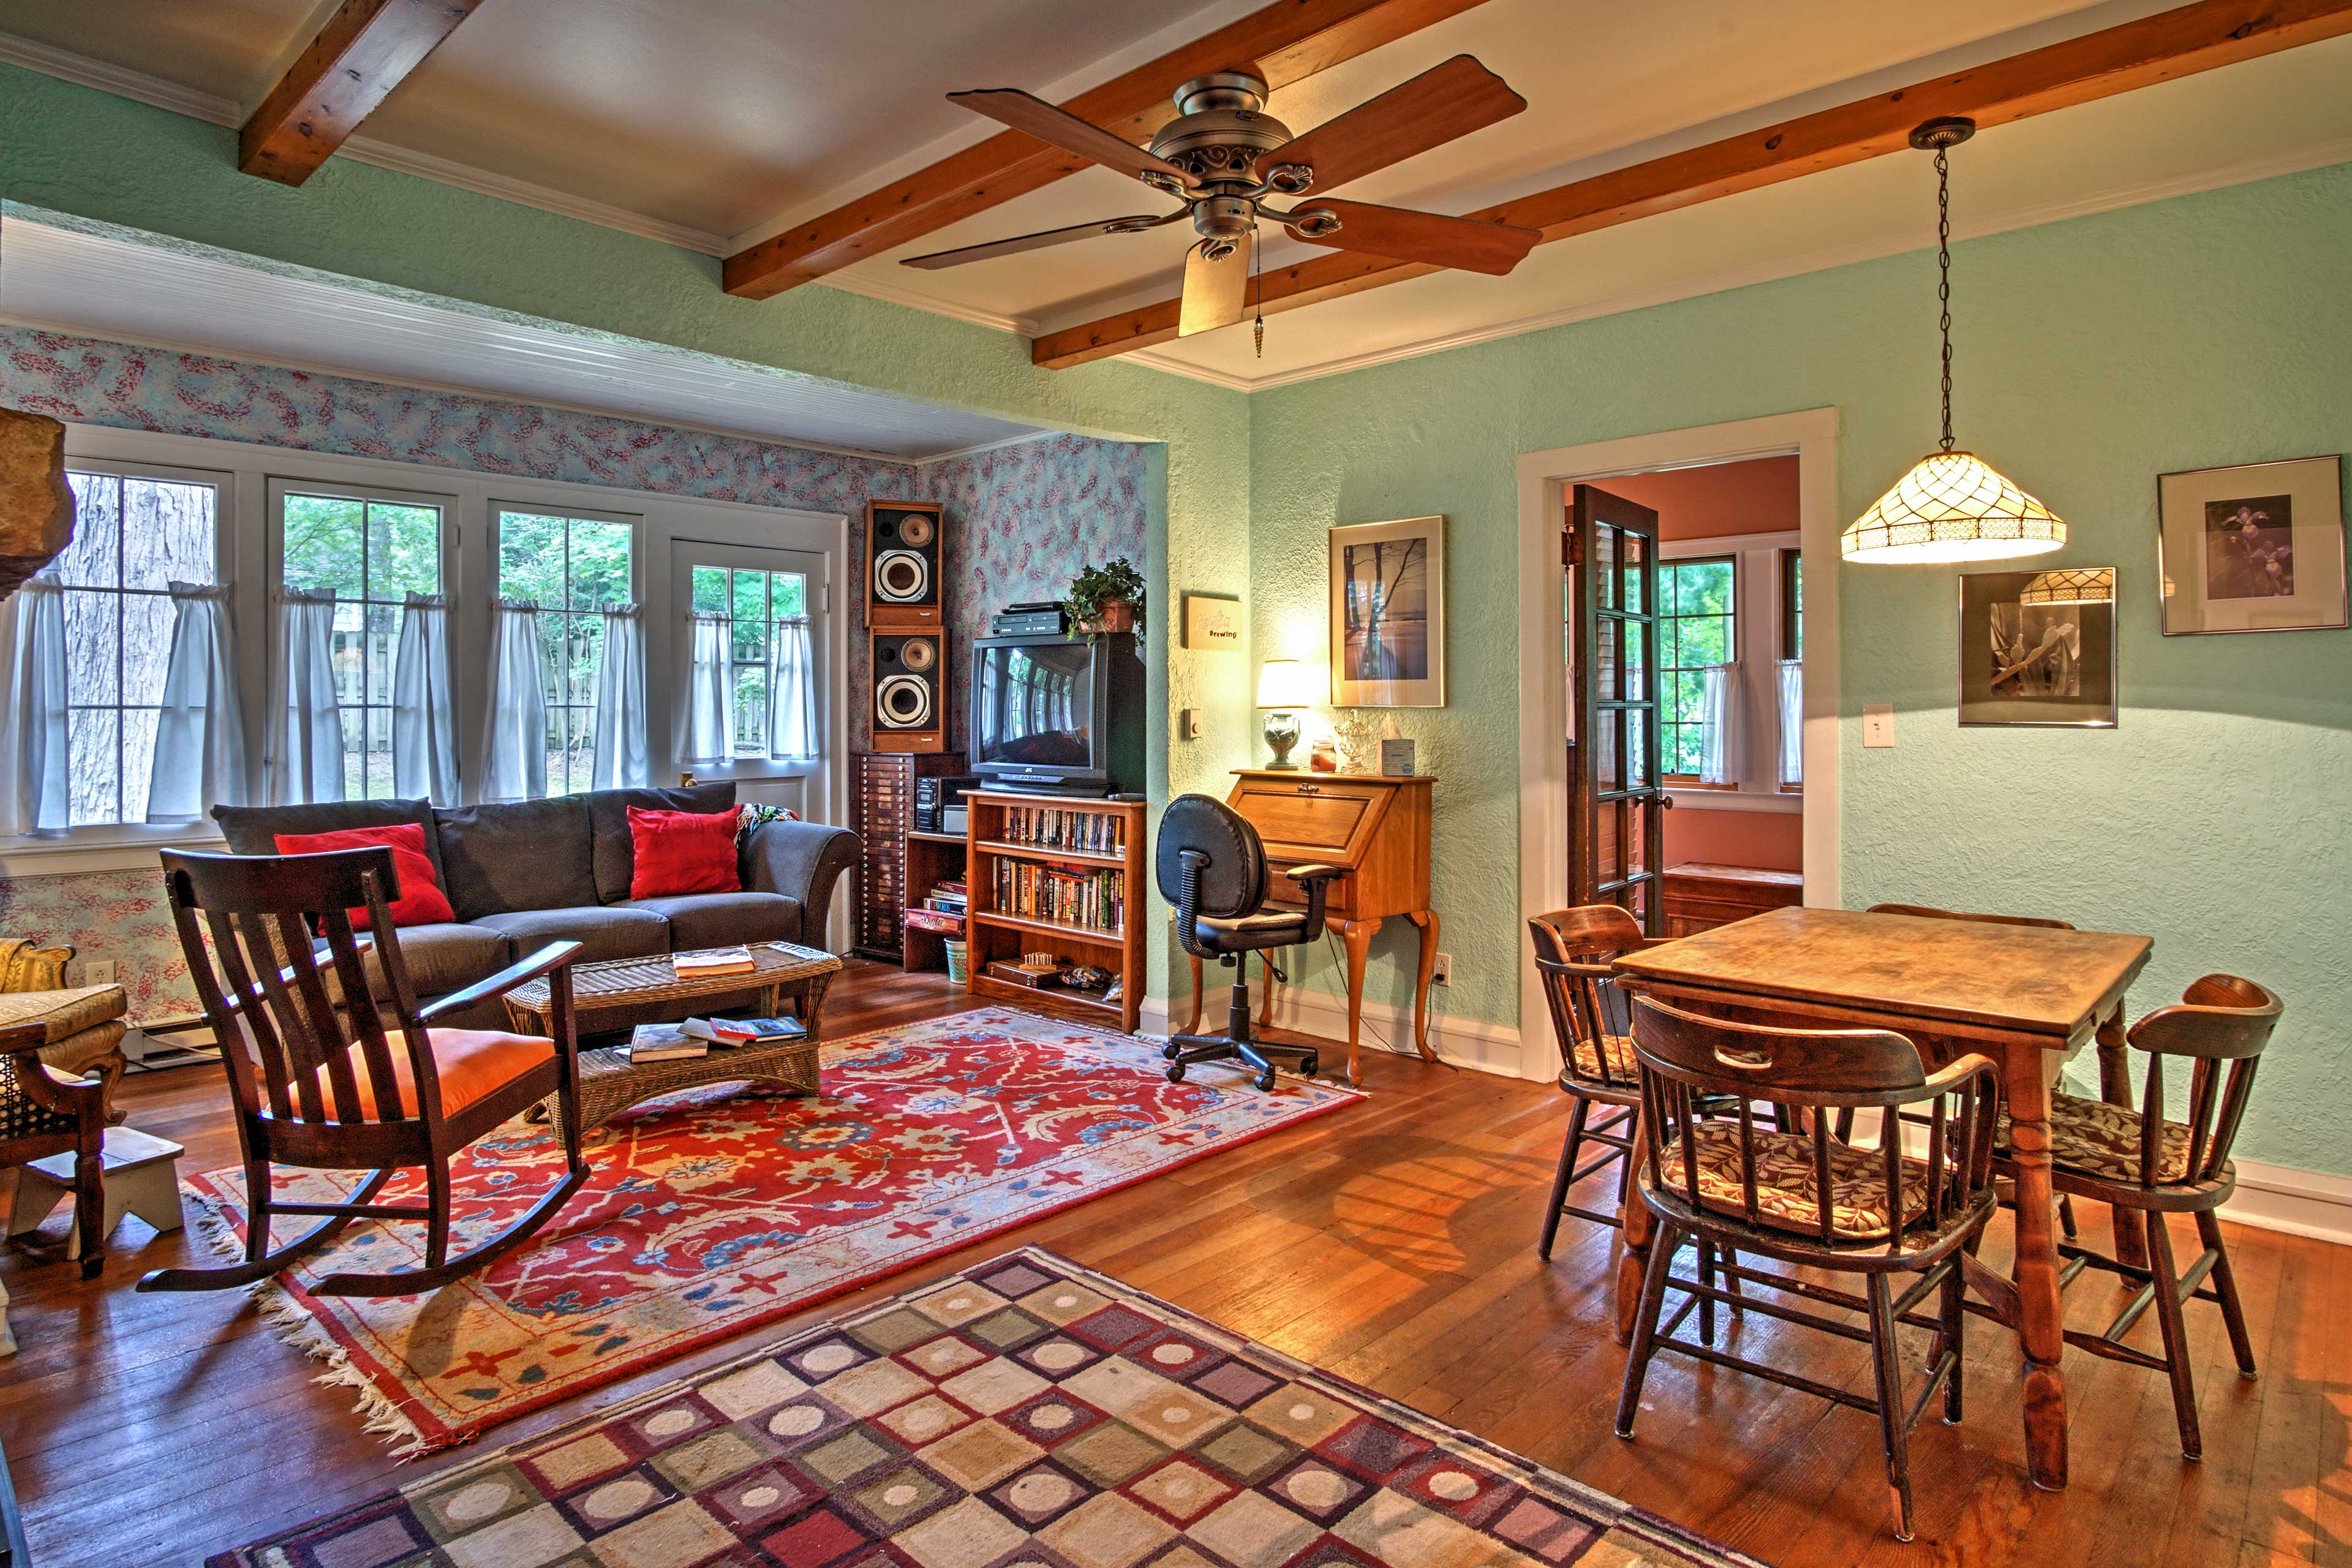 The living space features cozy  and traditional decor.